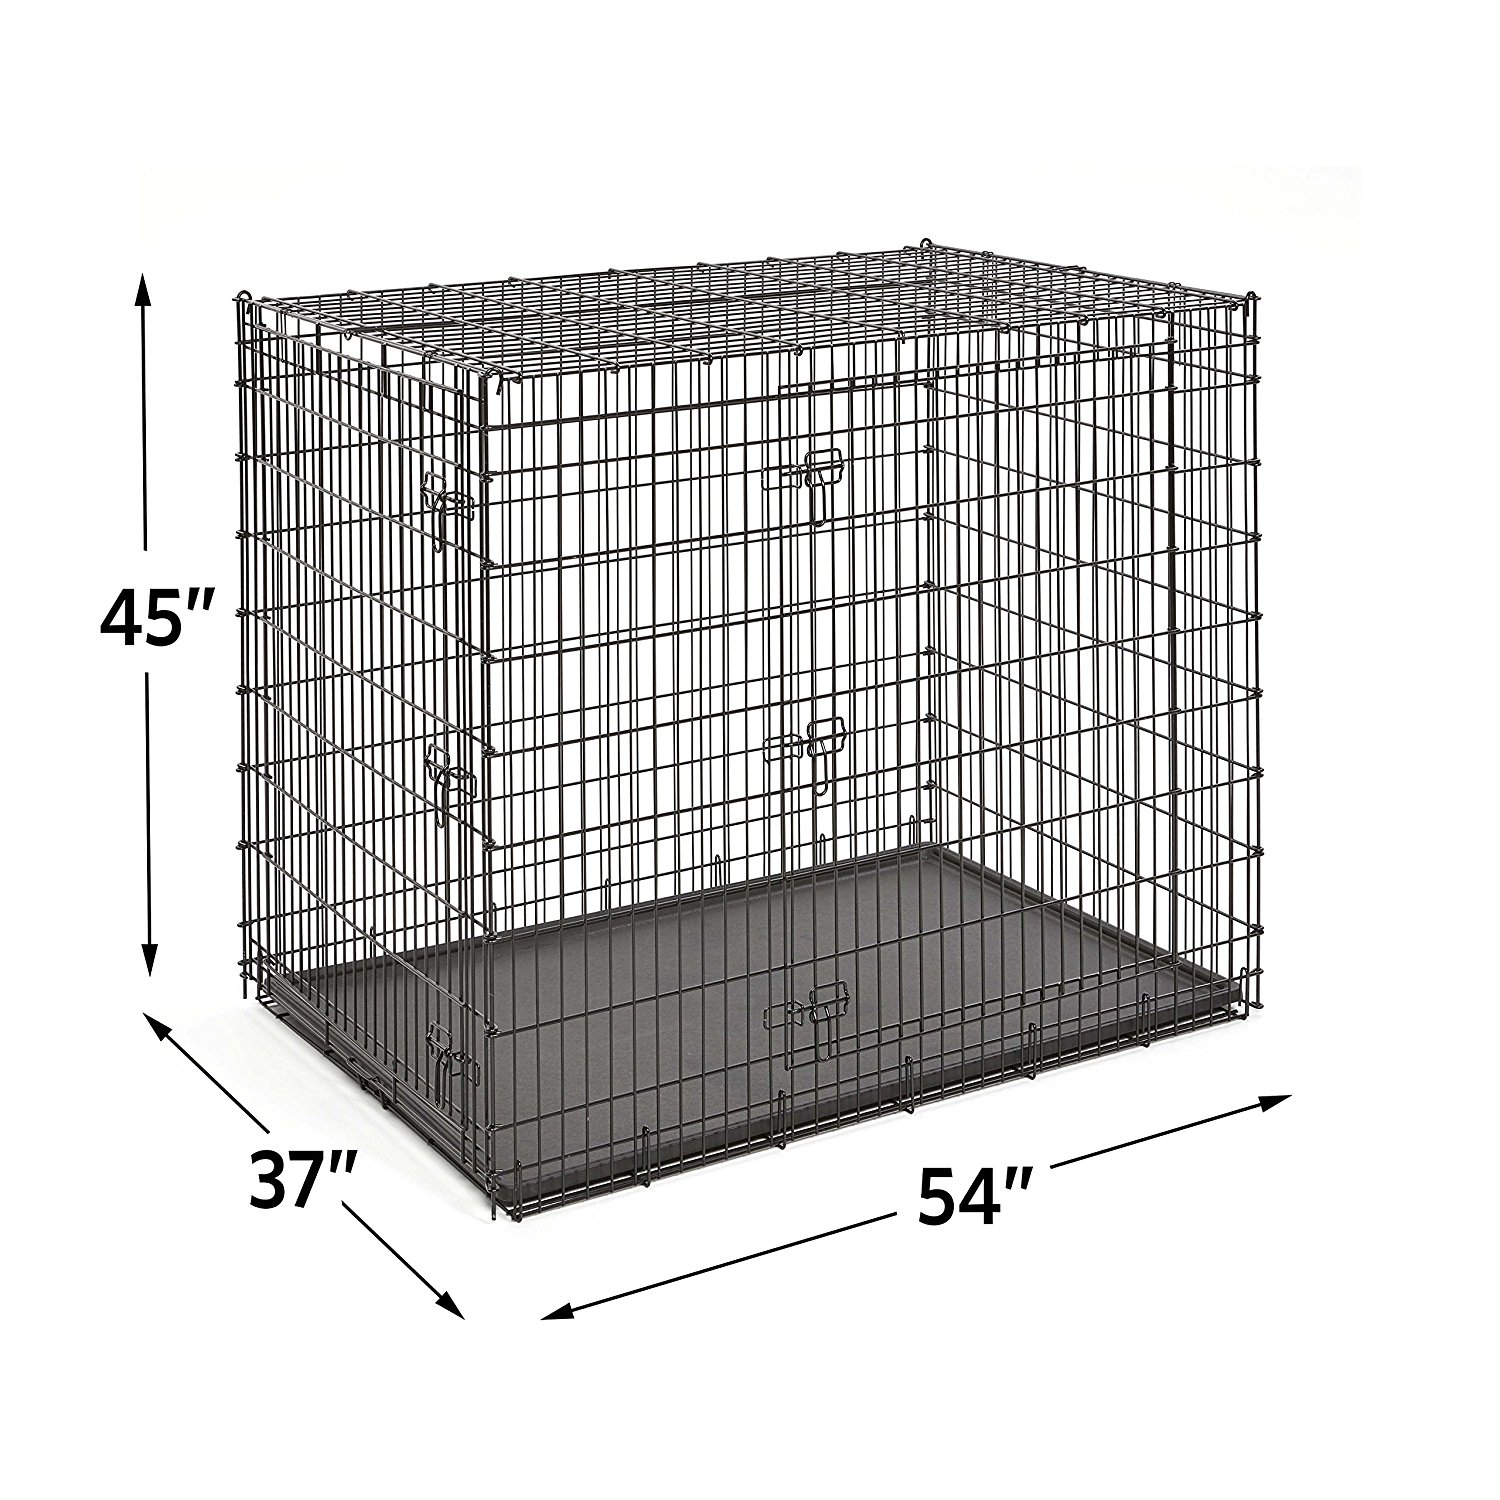 Great Pyrenees Crate - This is the wire crate we recommend for Great Pyrenees. If your Pyr is a farm guardian, depending on your set-up, this may not be something you need. It is handy for hauling to the vet as it can collapse down and not take lots of space when you don't need it.For our Pyr pups who are heading home to live as strictly a family companion, this is something we do recommend. Whether you decide to crate train in your home or not, we still feel it is important for a dog to have their own space that they can retreat to within a home. It also provides you with a place to put them where they are safe and comfortable for occasional situation in which they, for whatever reason, are not able to be out and about in your home.Although this is quite large for a pup, there is a divider panel available that will allow you to use it throughout your dog's life without having to buy different sizes for different stages. I will include a link for the divider below!https://amzn.to/2yHZAZY